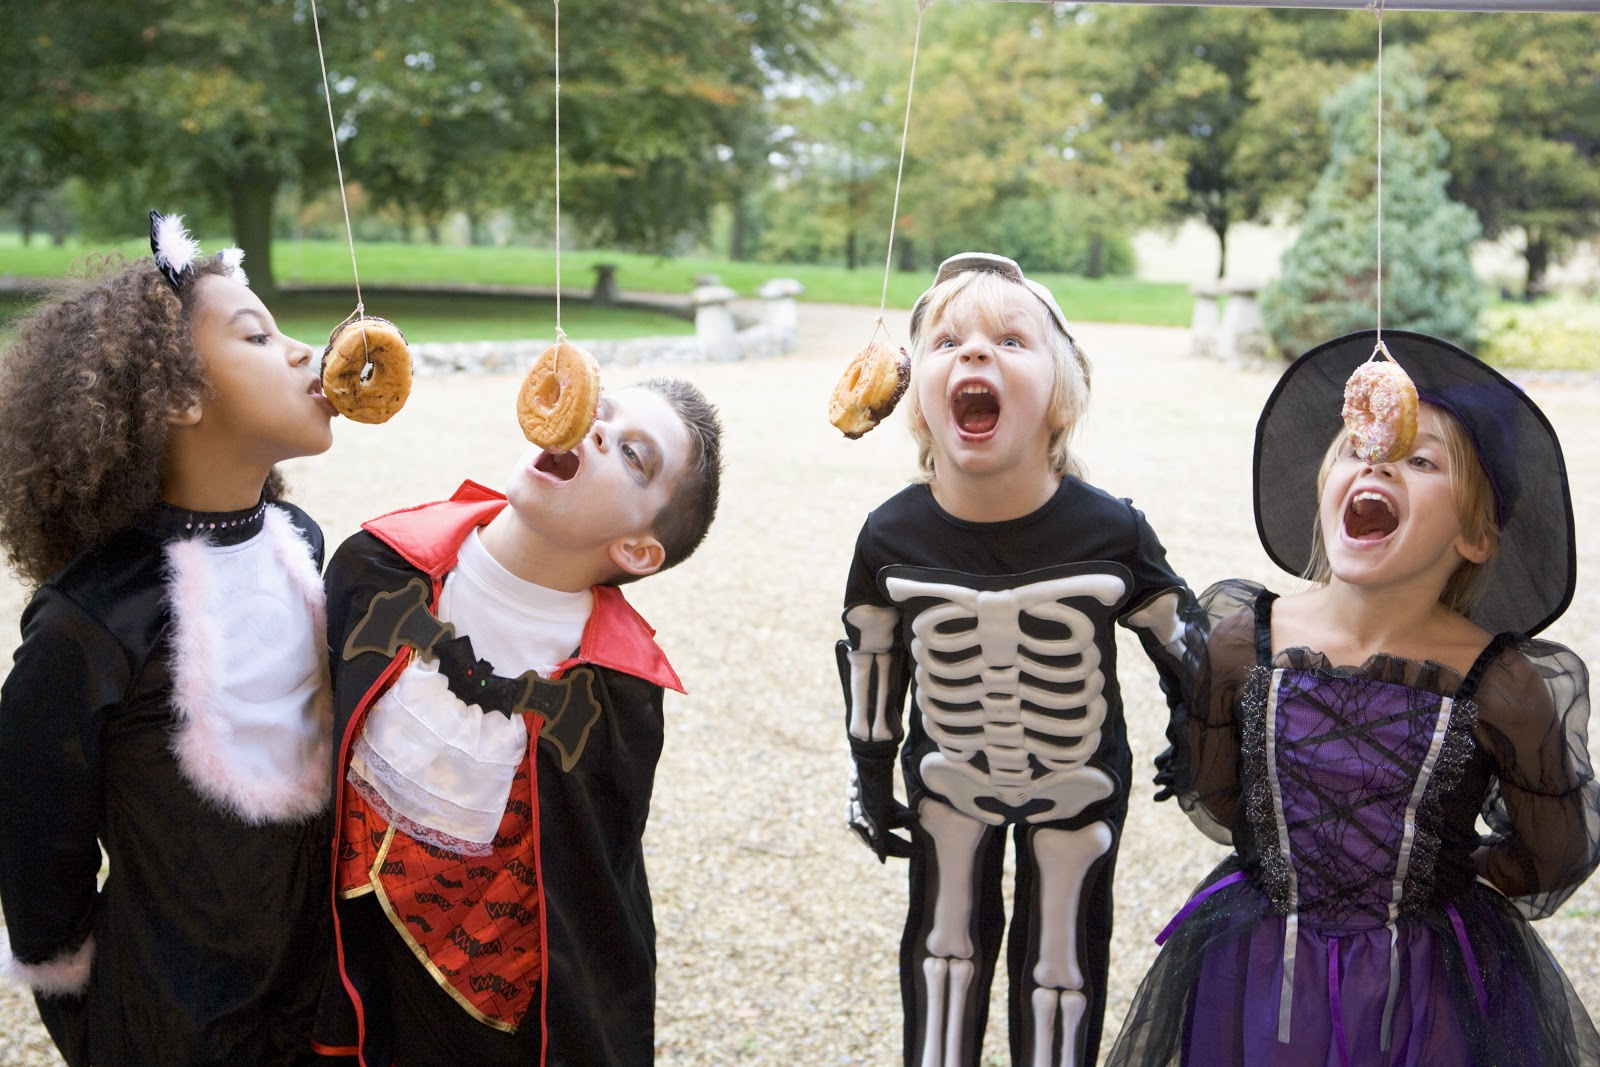 Children enjoy fun Halloween themed party games while in costume.